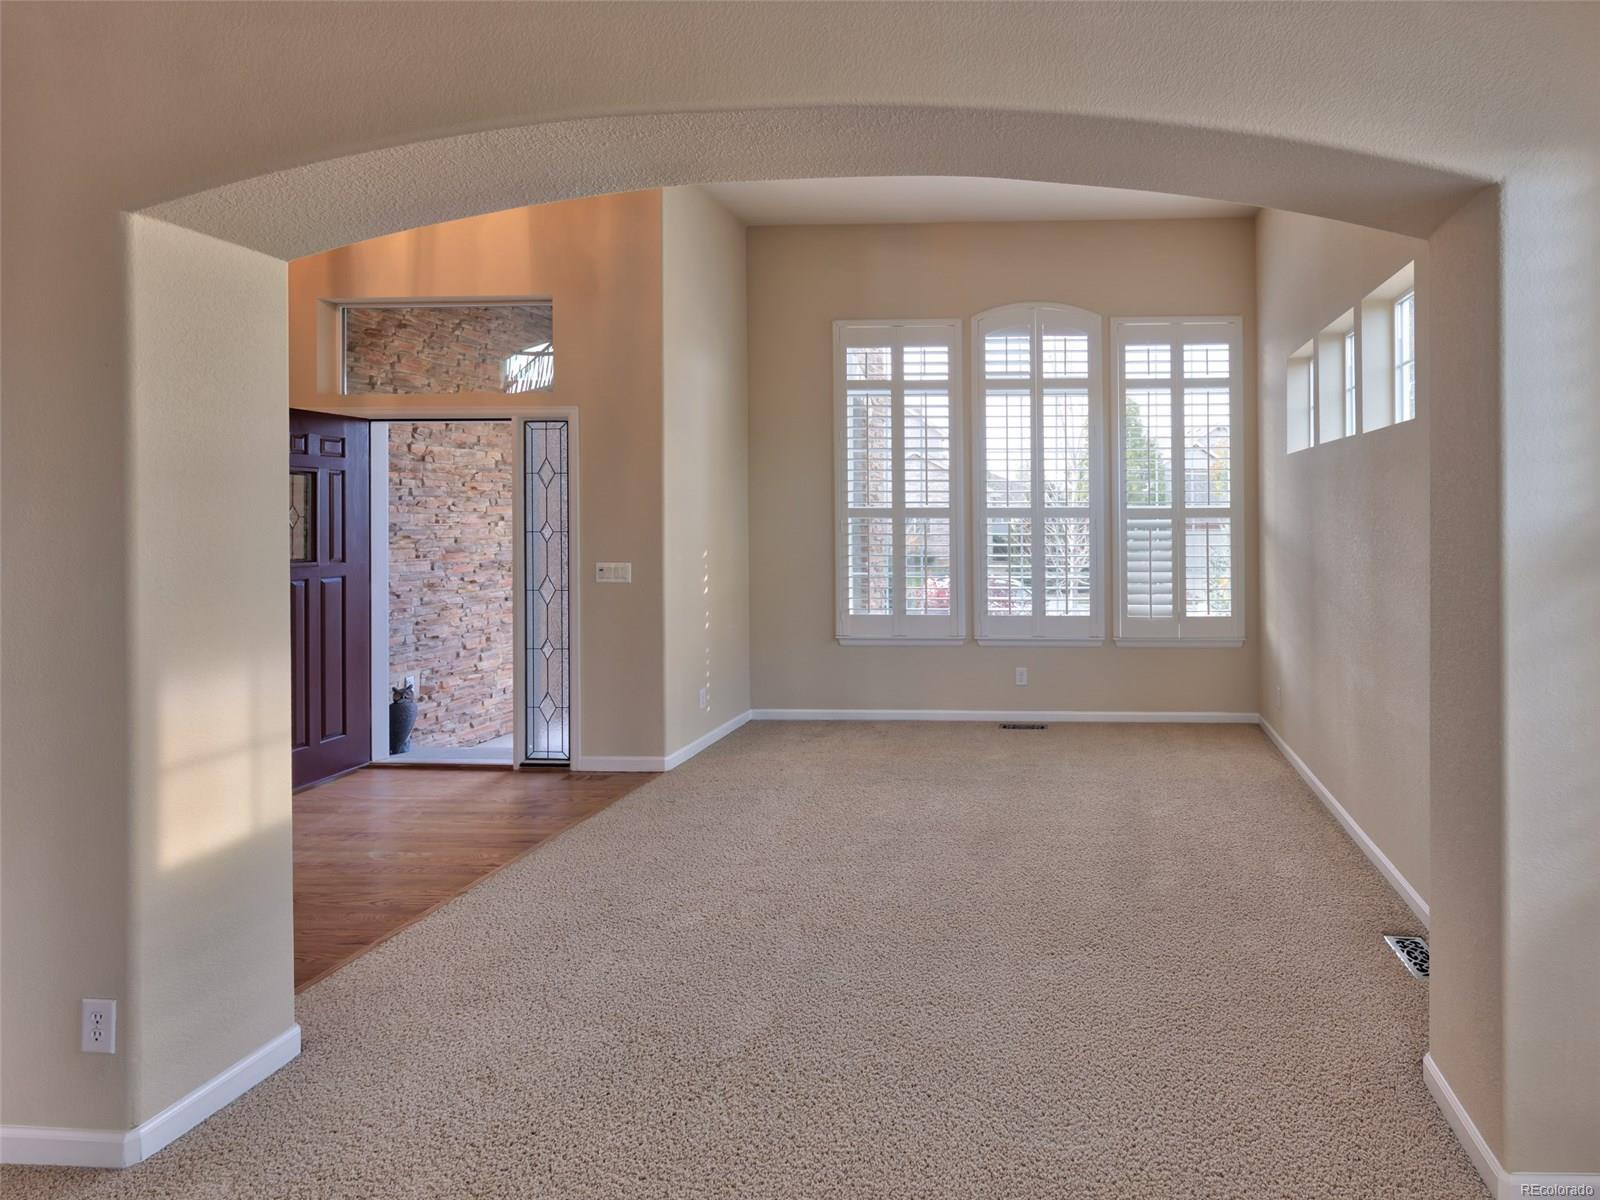 View Dining Room to Living room